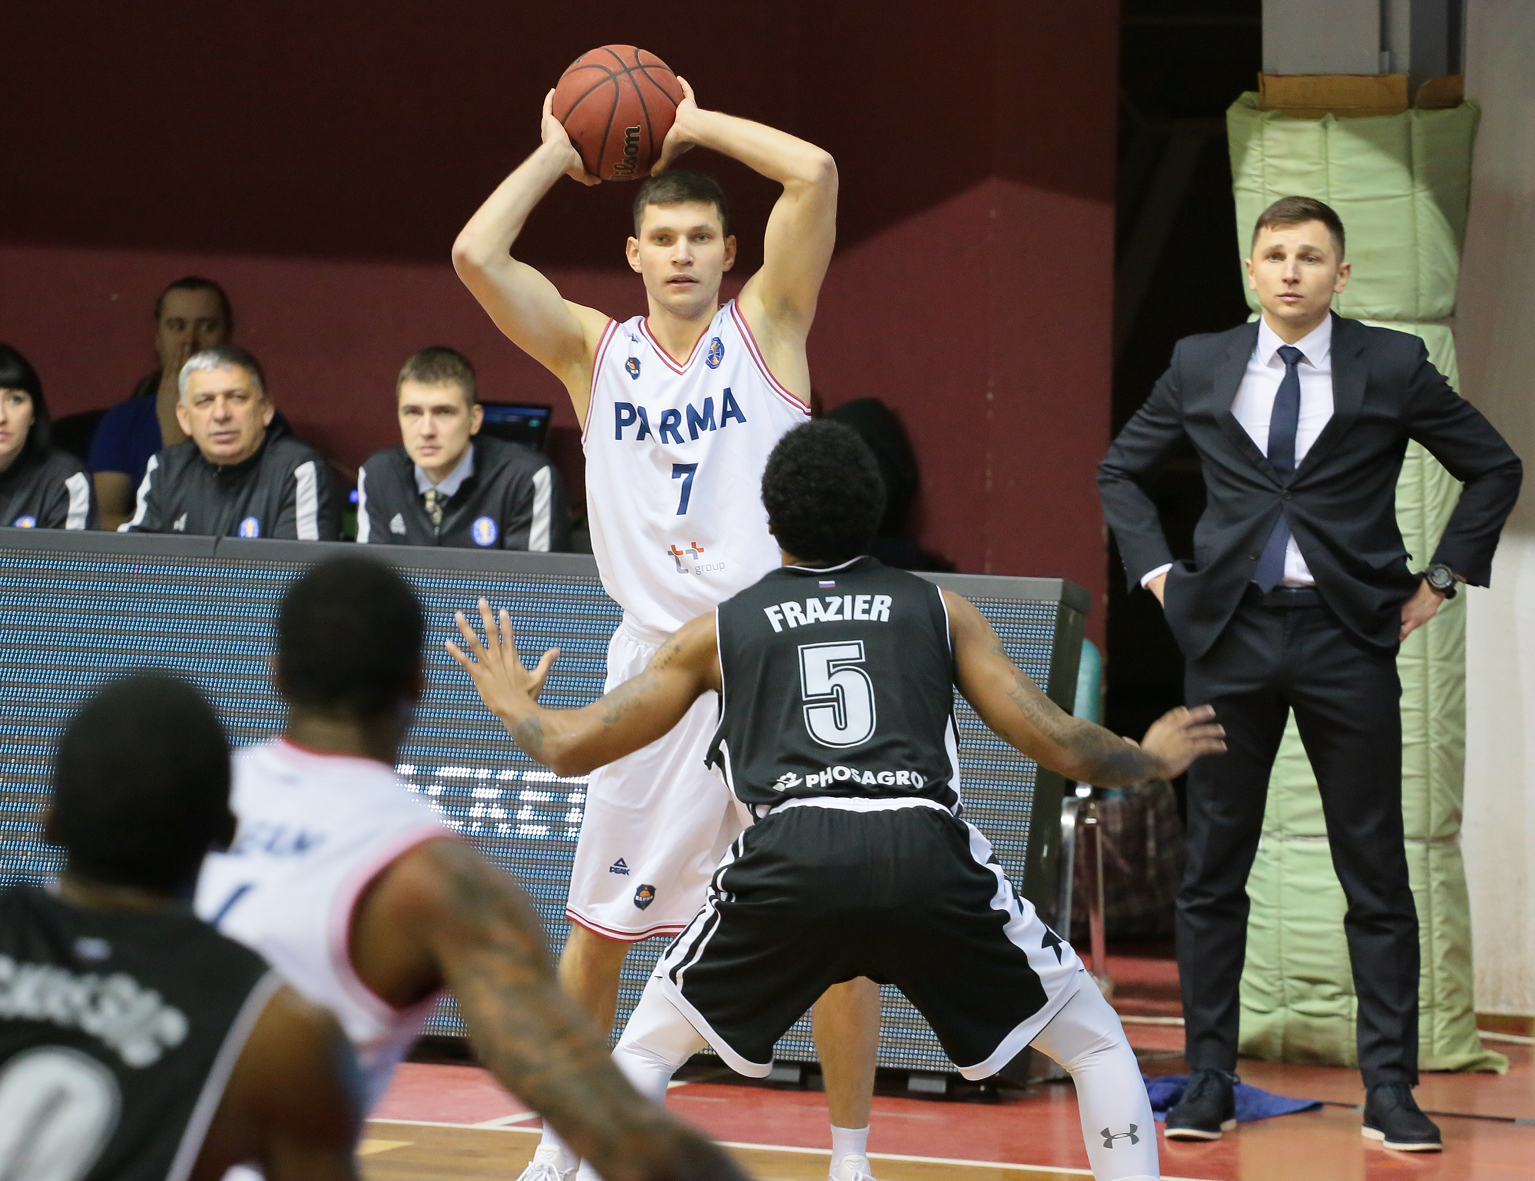 PARMA Stuns Avtodor With Late Surge